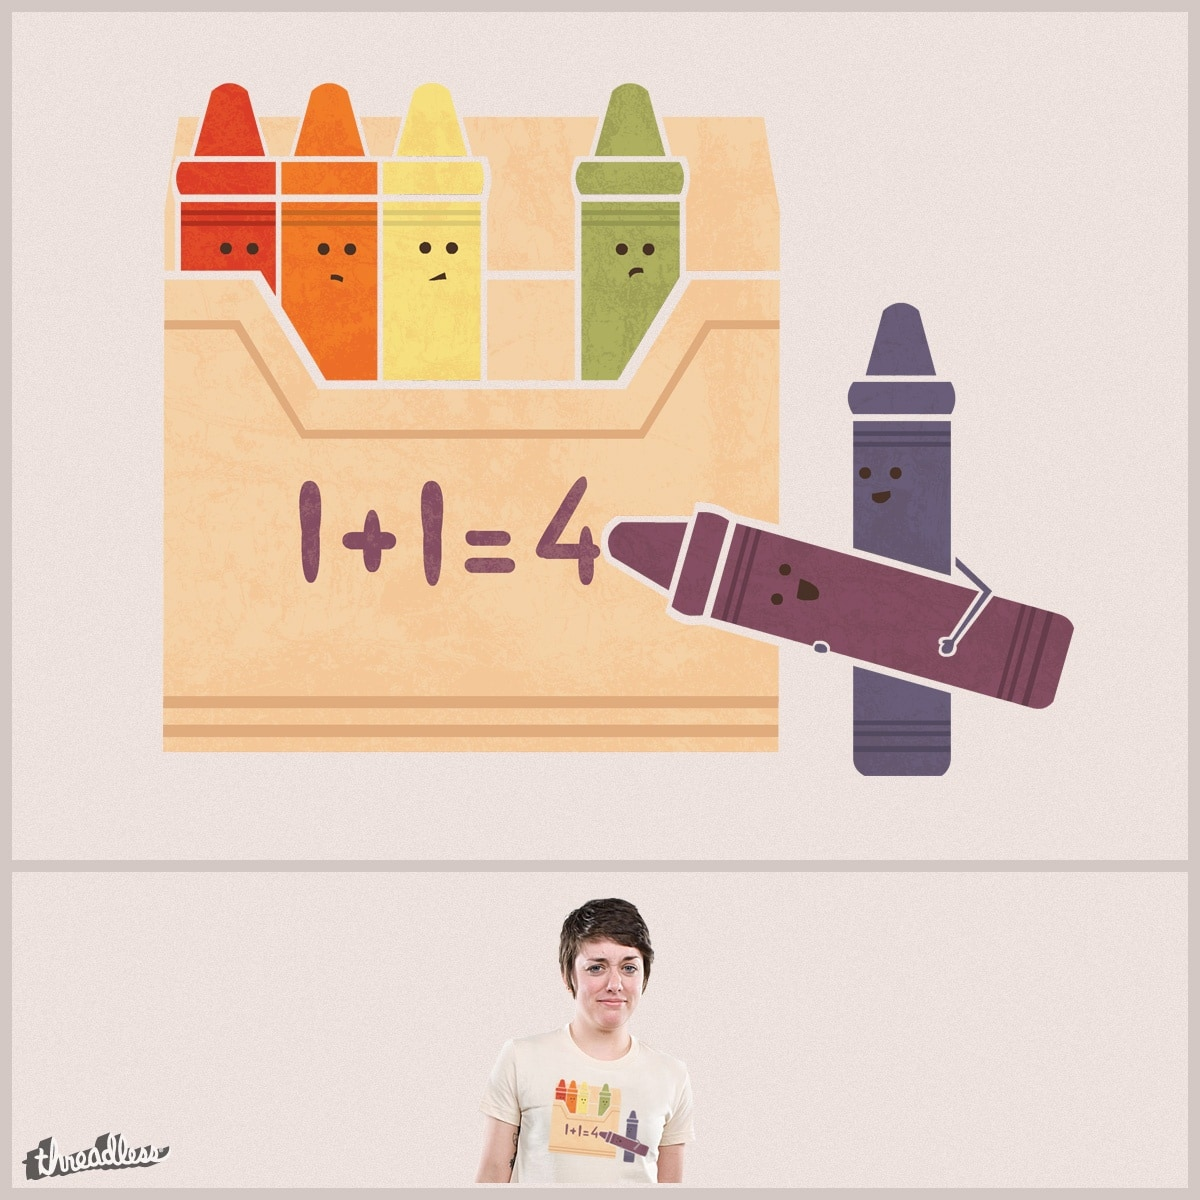 Not The Brightest Crayons by TeoZ on Threadless